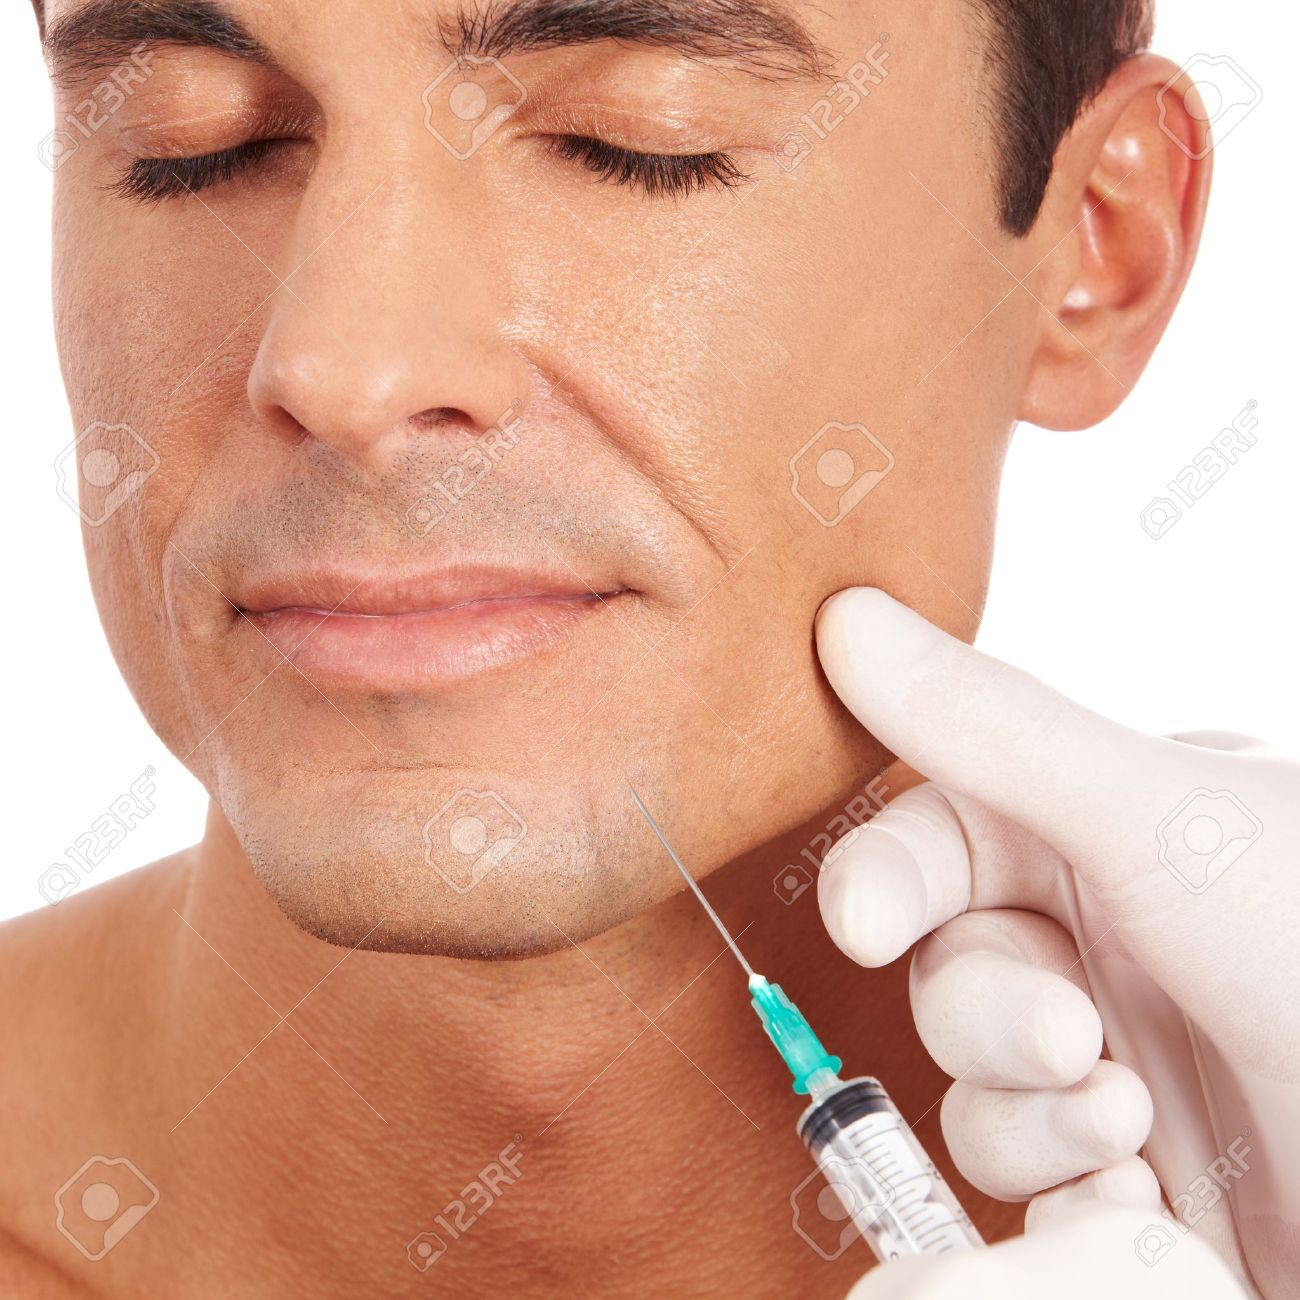 Attractive man at plastic surgery with syringe in his face Standard-Bild - 13713185